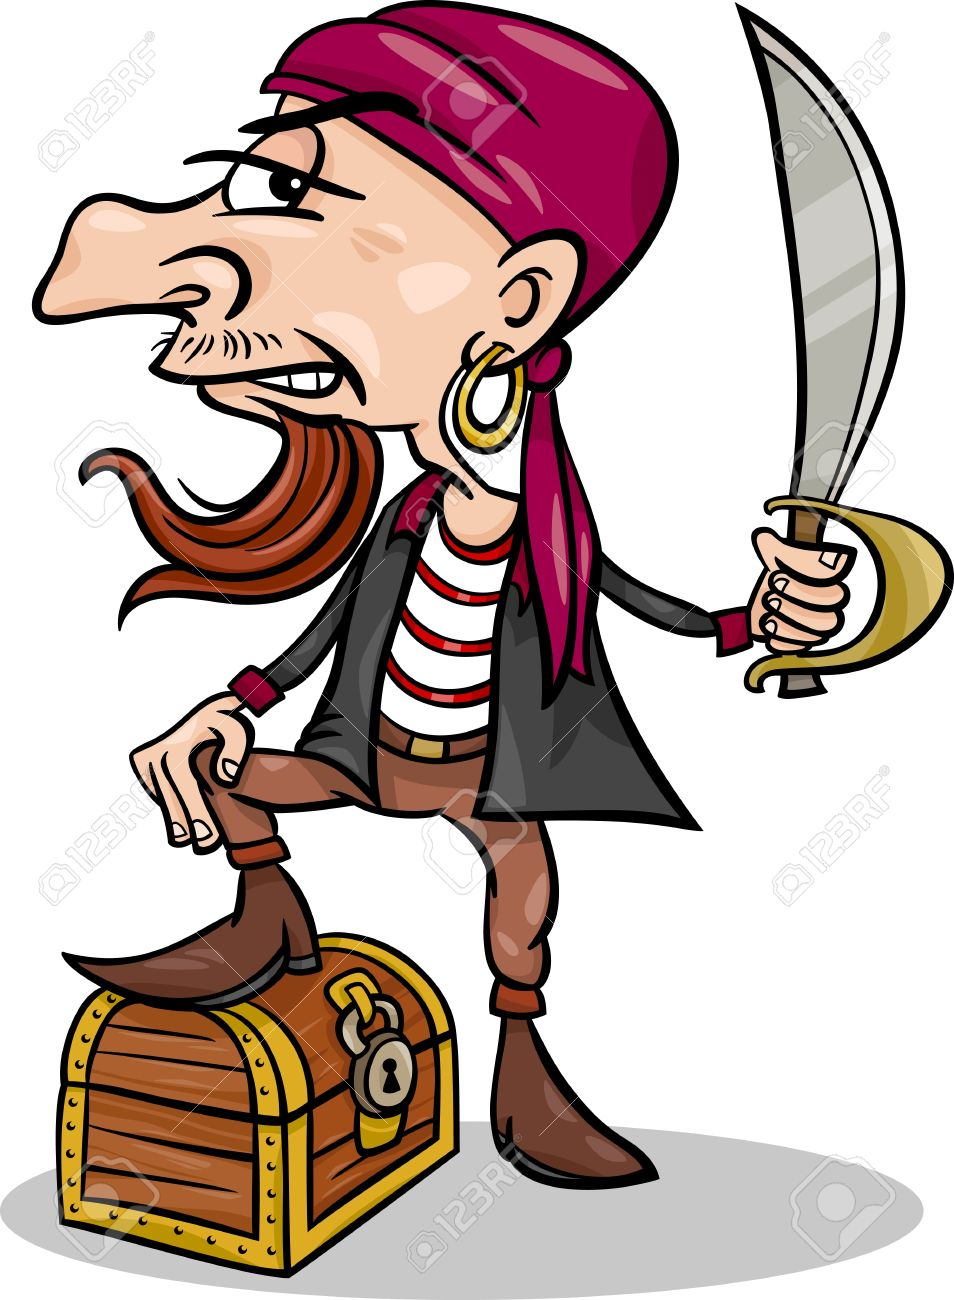 Cartoon Illustration of Funny Pirate or Corsair with Sword and Treasure Chest Stock Vector - 20333469